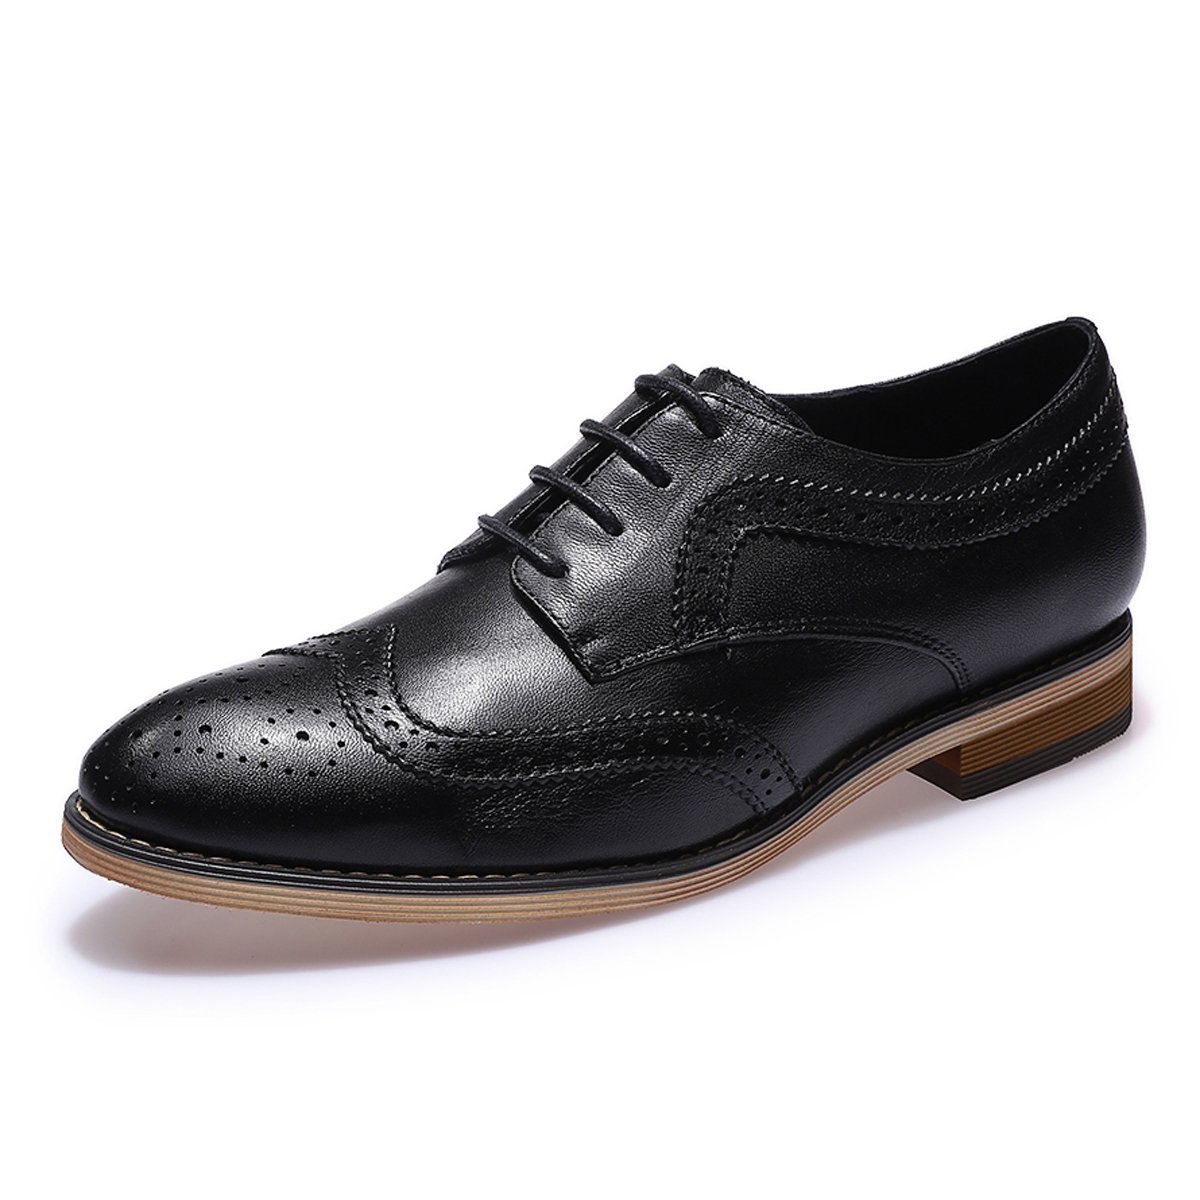 Vintage Style Shoes, Vintage Inspired Shoes Mona flying Womens Leather Perforated Lace-up Oxfords Brogue Wingtip Derby Saddle Shoes for Girls ladis Womens $89.99 AT vintagedancer.com